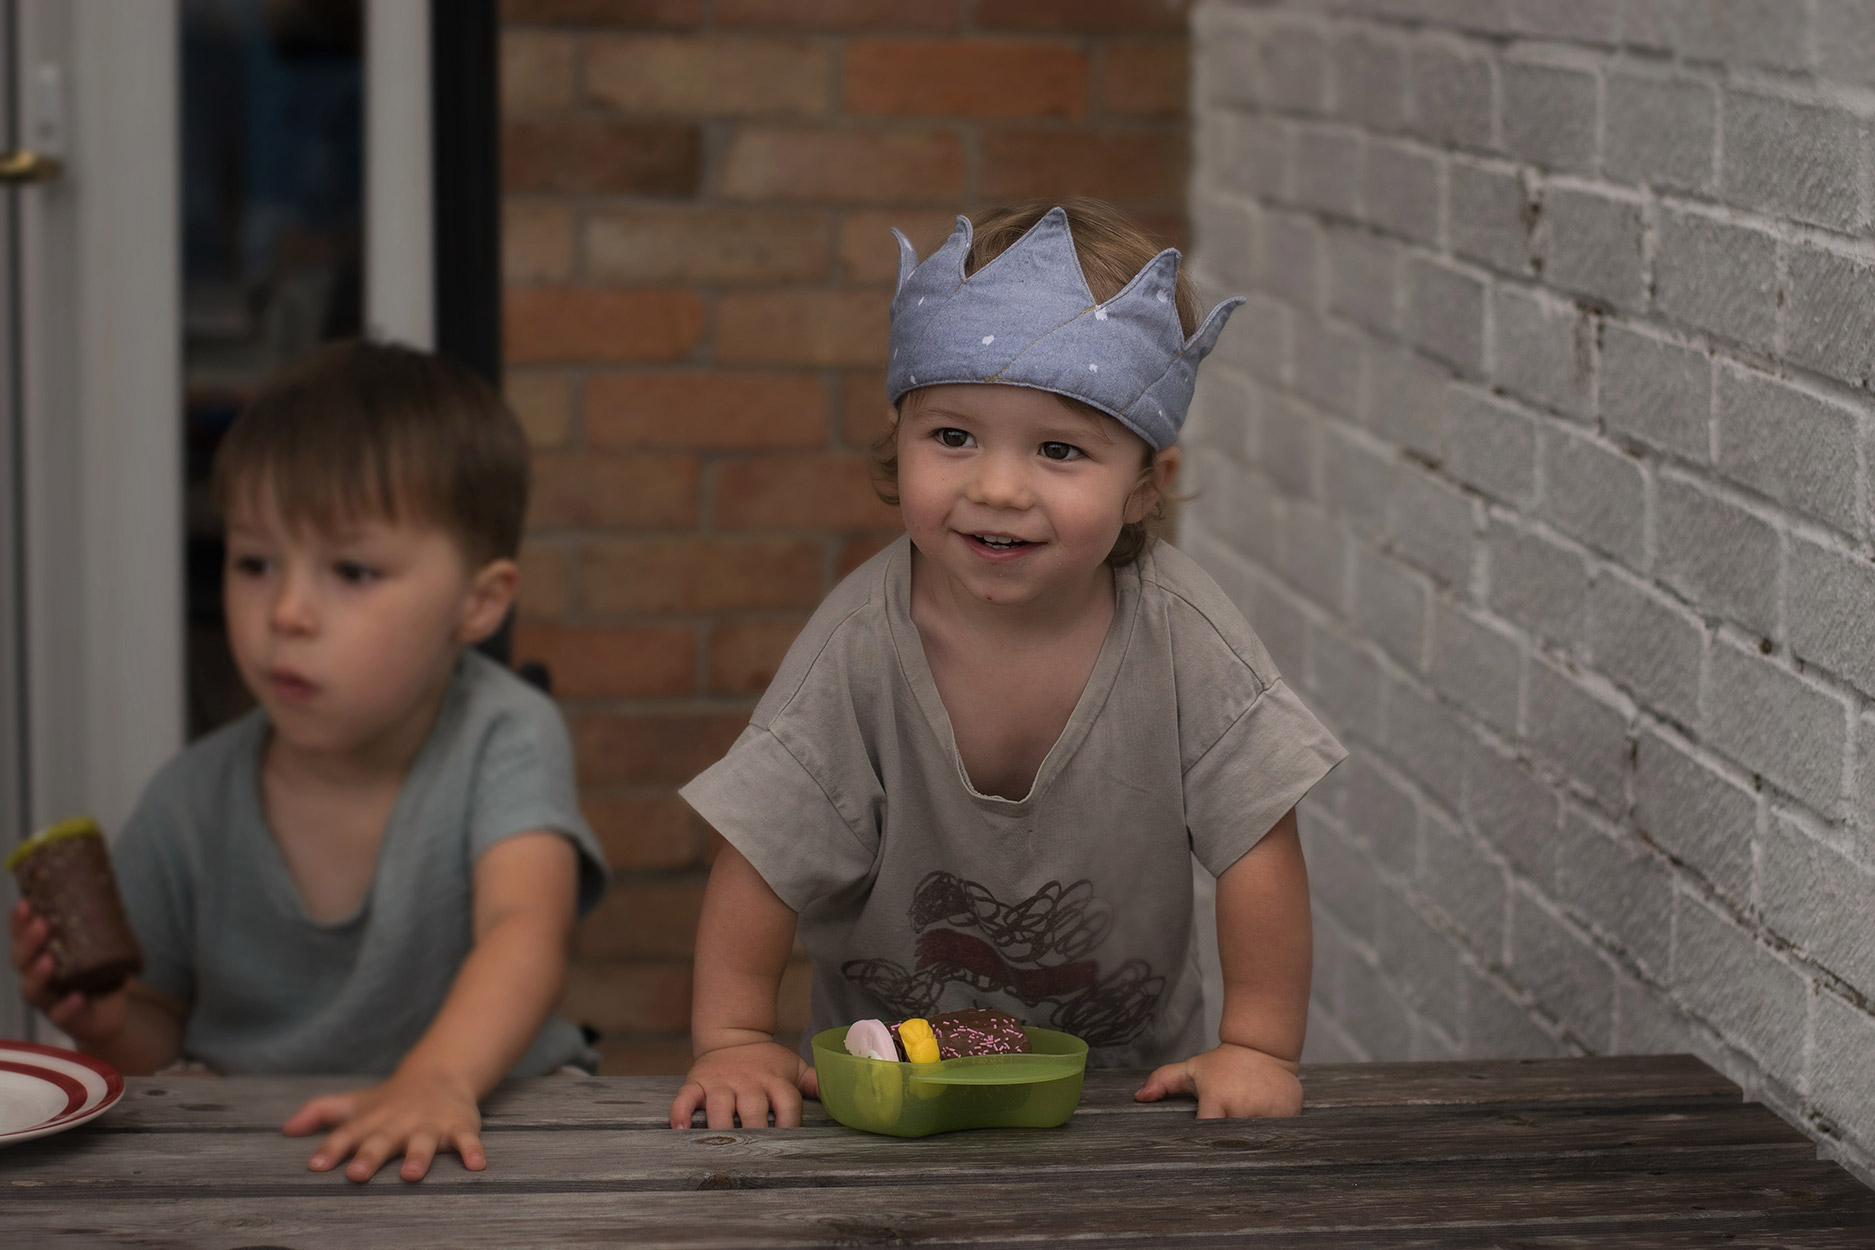 Toddler wearing JOHN Bobo Choses t-shirt and fabric birthday crown at tea party with grandparents and family